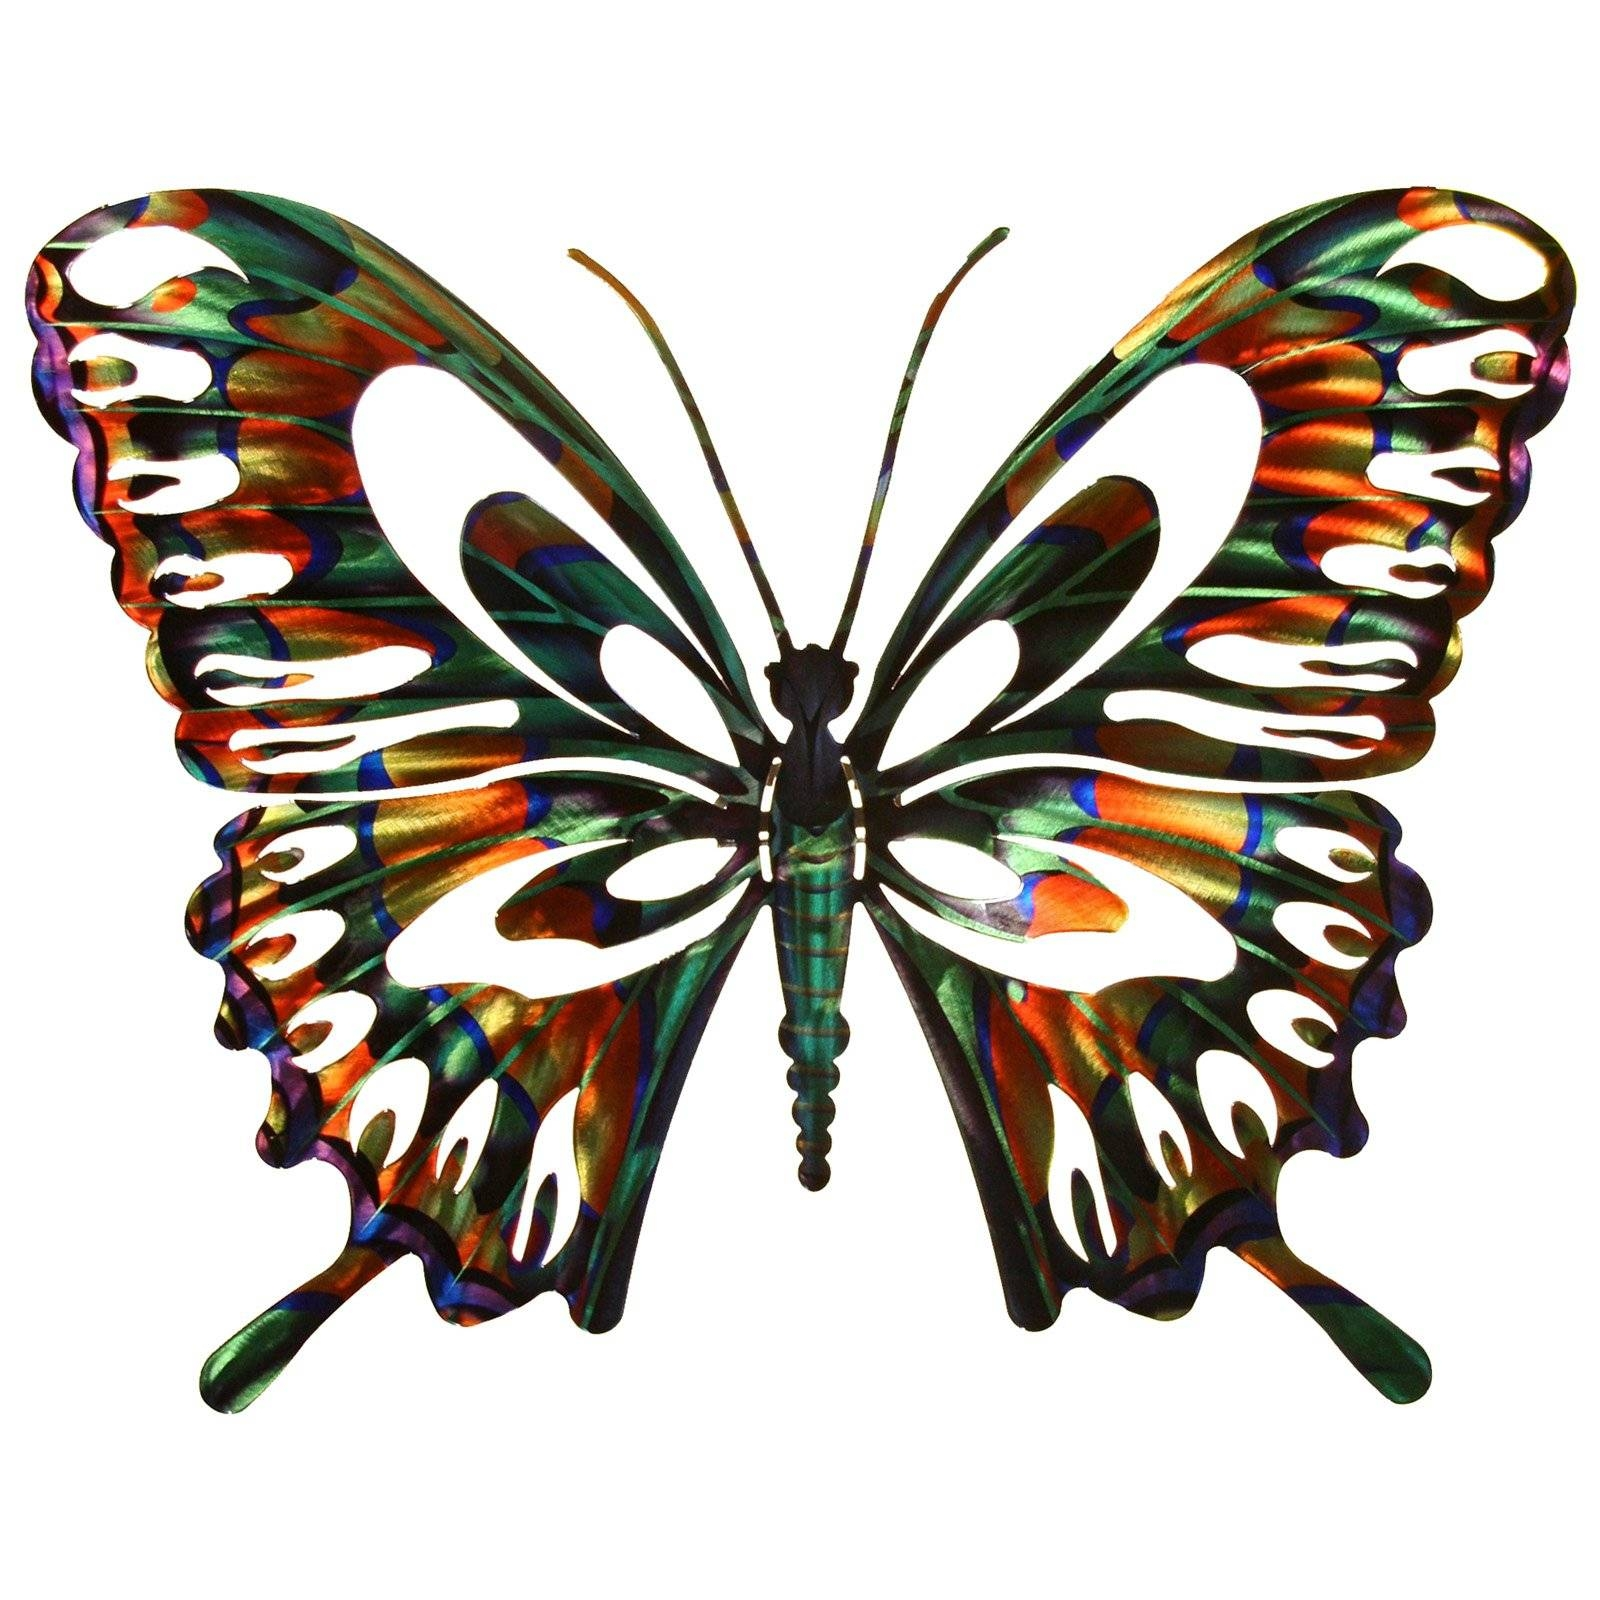 3D Butterfly Metal Outdoor Wall Art | Hayneedle Within Most Up To Date Butterfly Metal Wall Art (View 3 of 20)